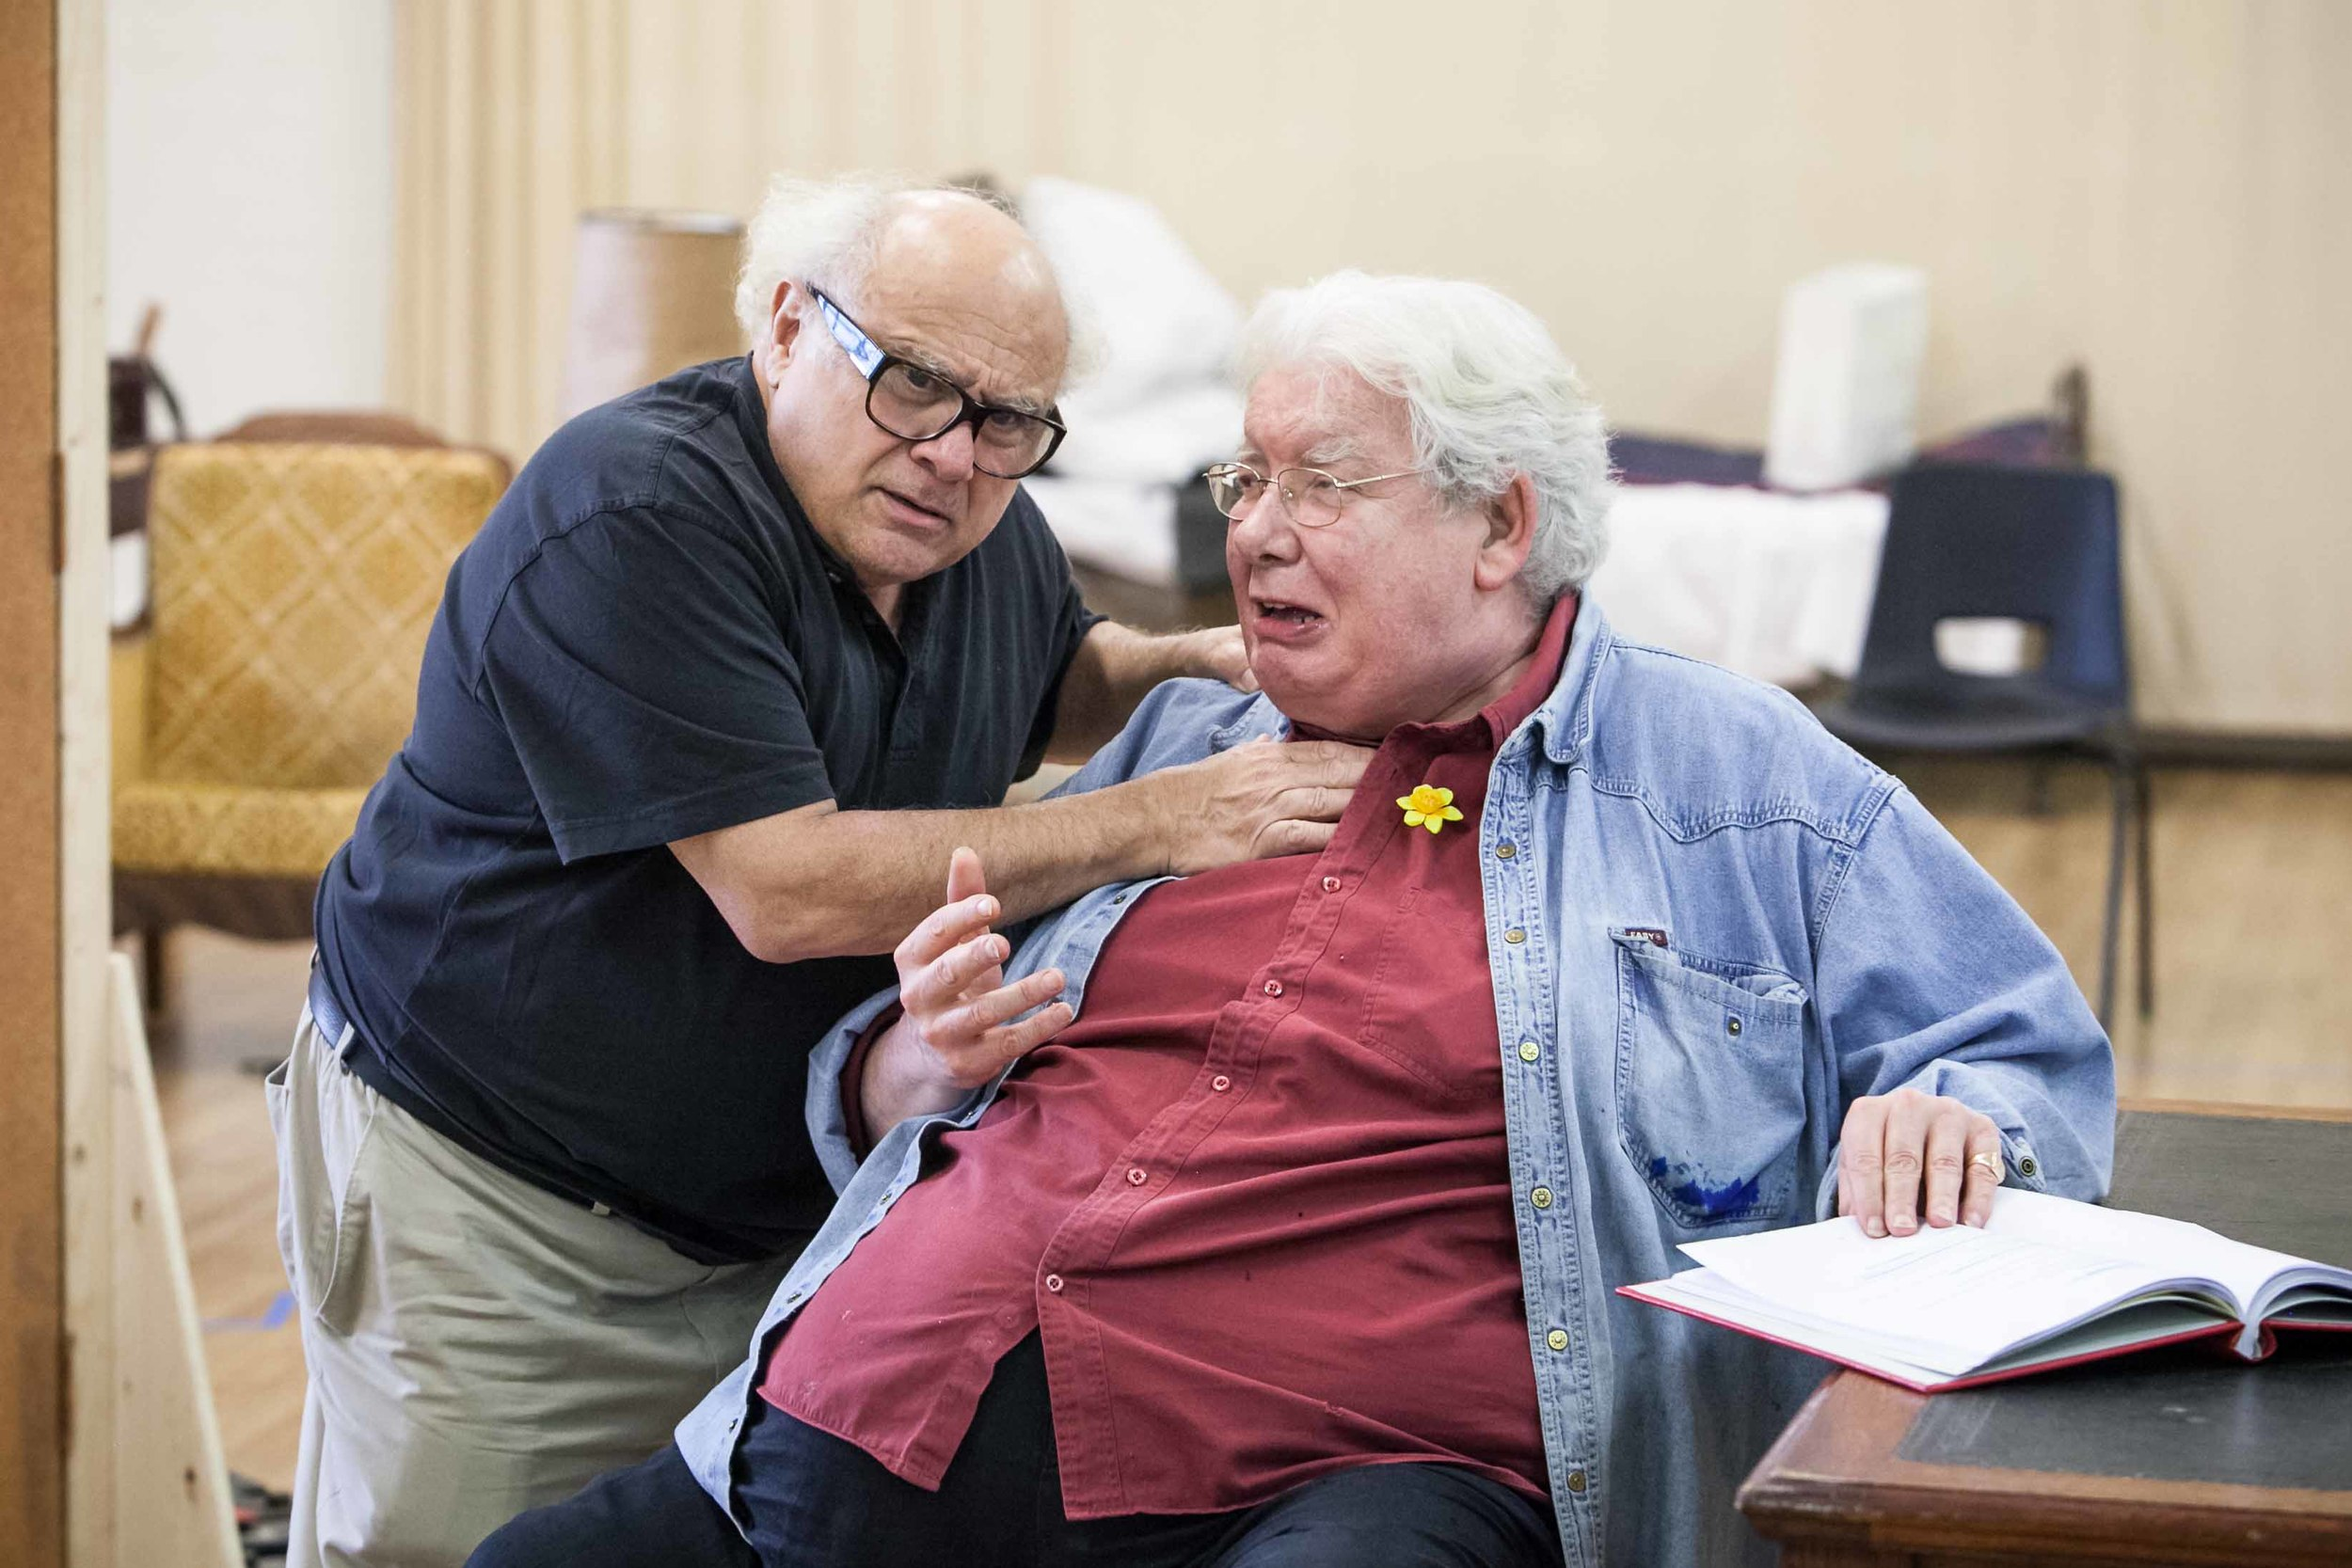 Danny DeVito and Richard Griffiths in The Sunshine Boys